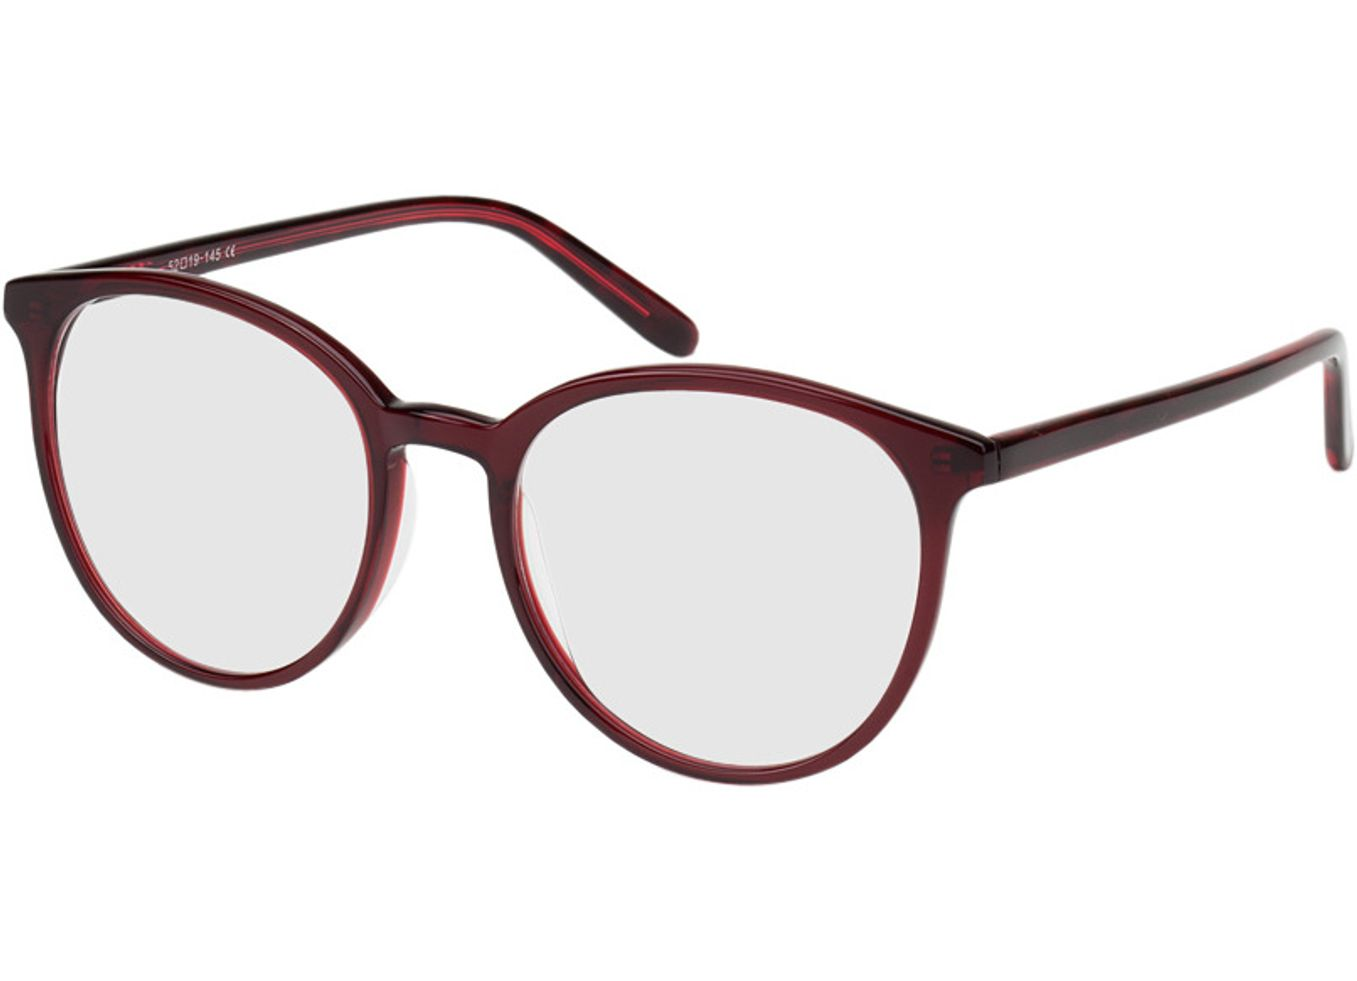 3721-singlevision-0000 New York-rot Gleitsichtbrille, Vollrand, Rund Brille24 Collection